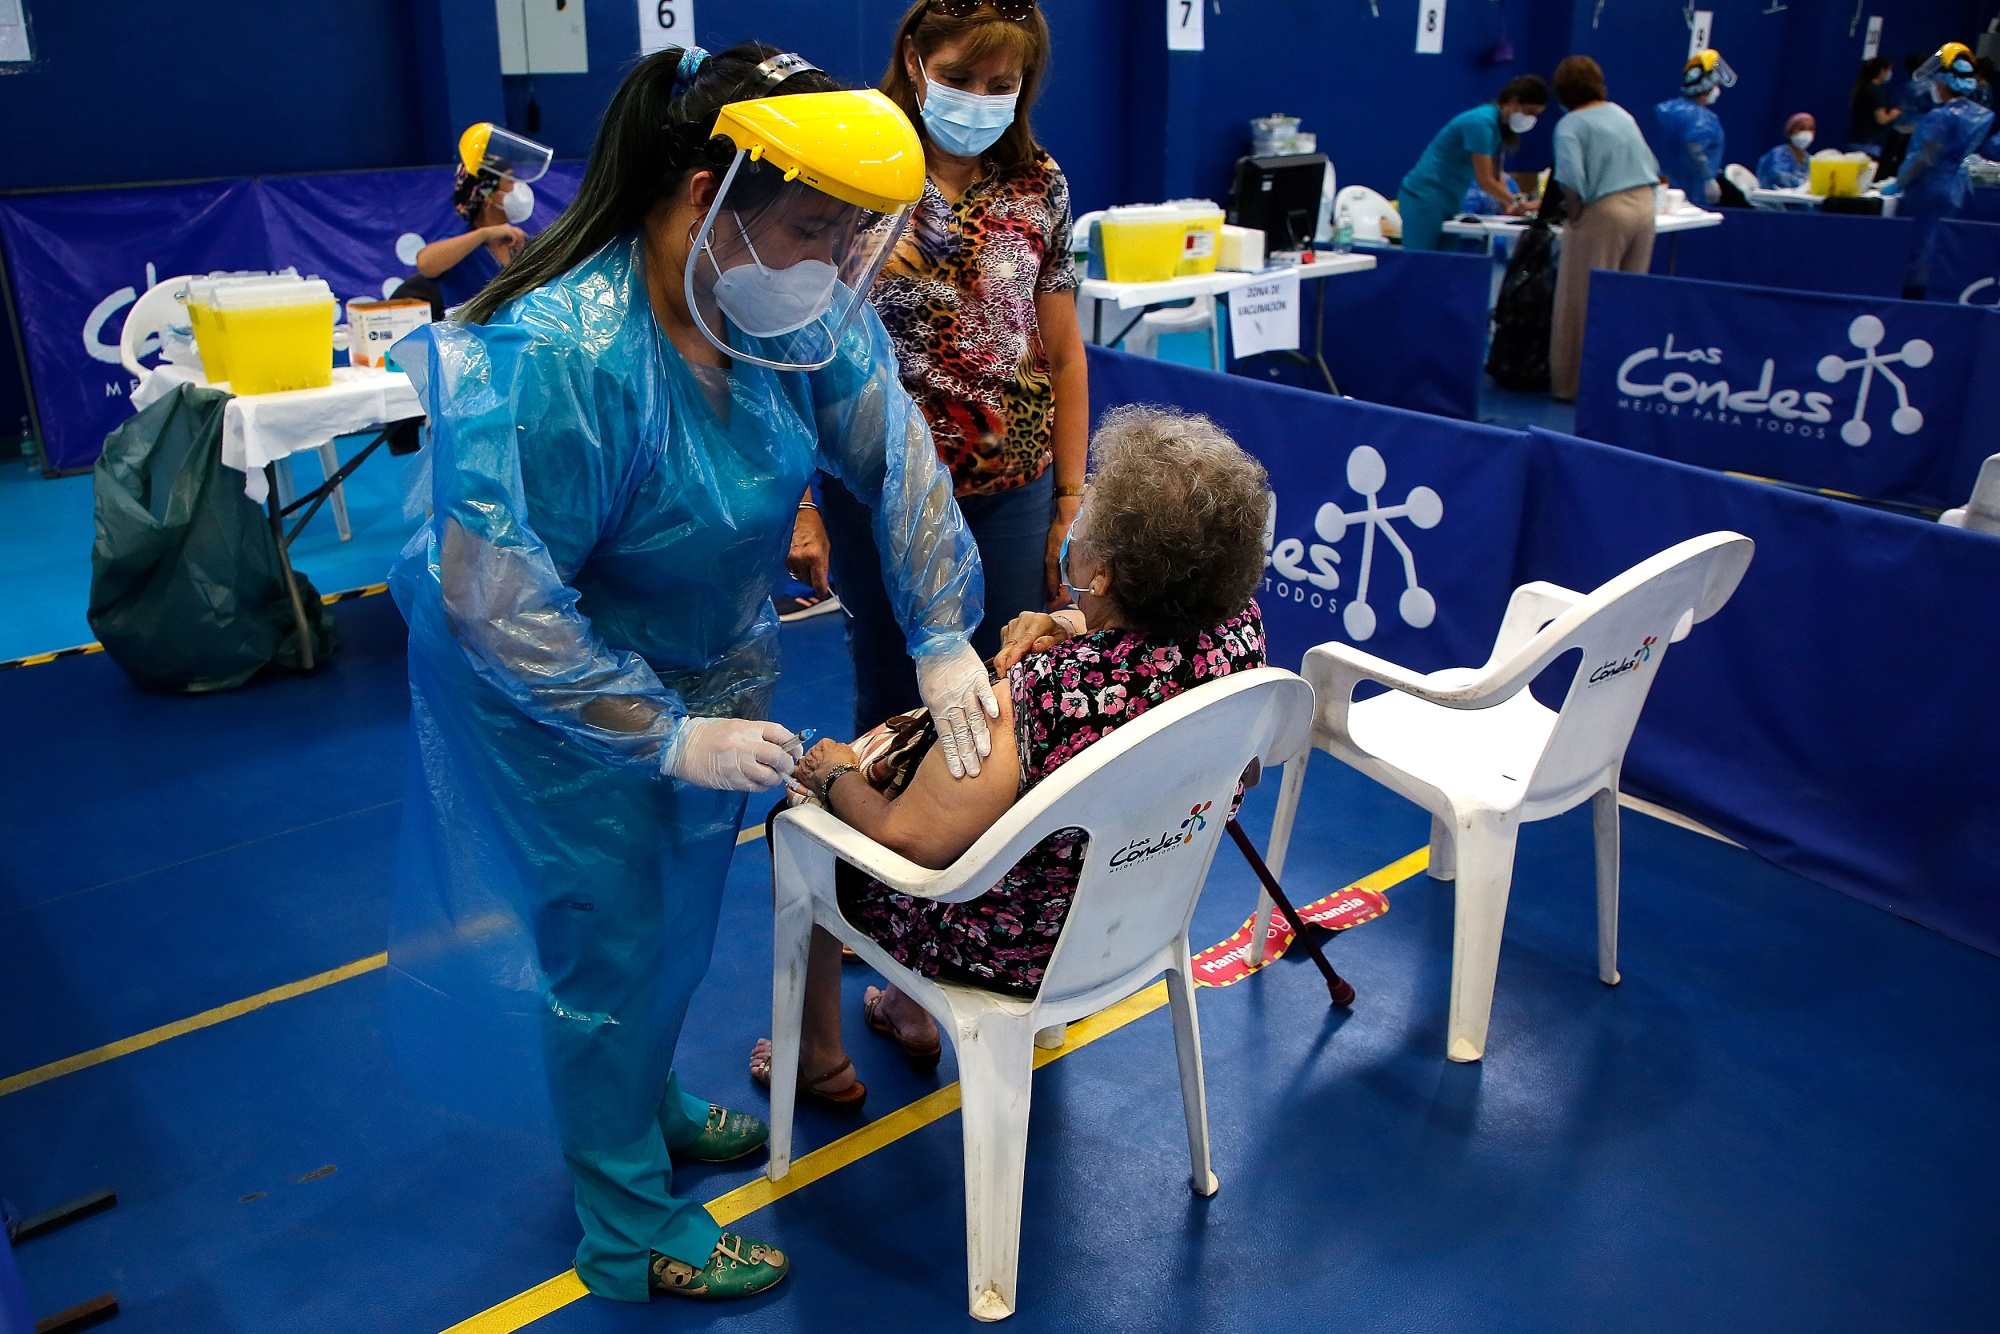 Mass vaccination in Santiago, Chile on Feb. 3.